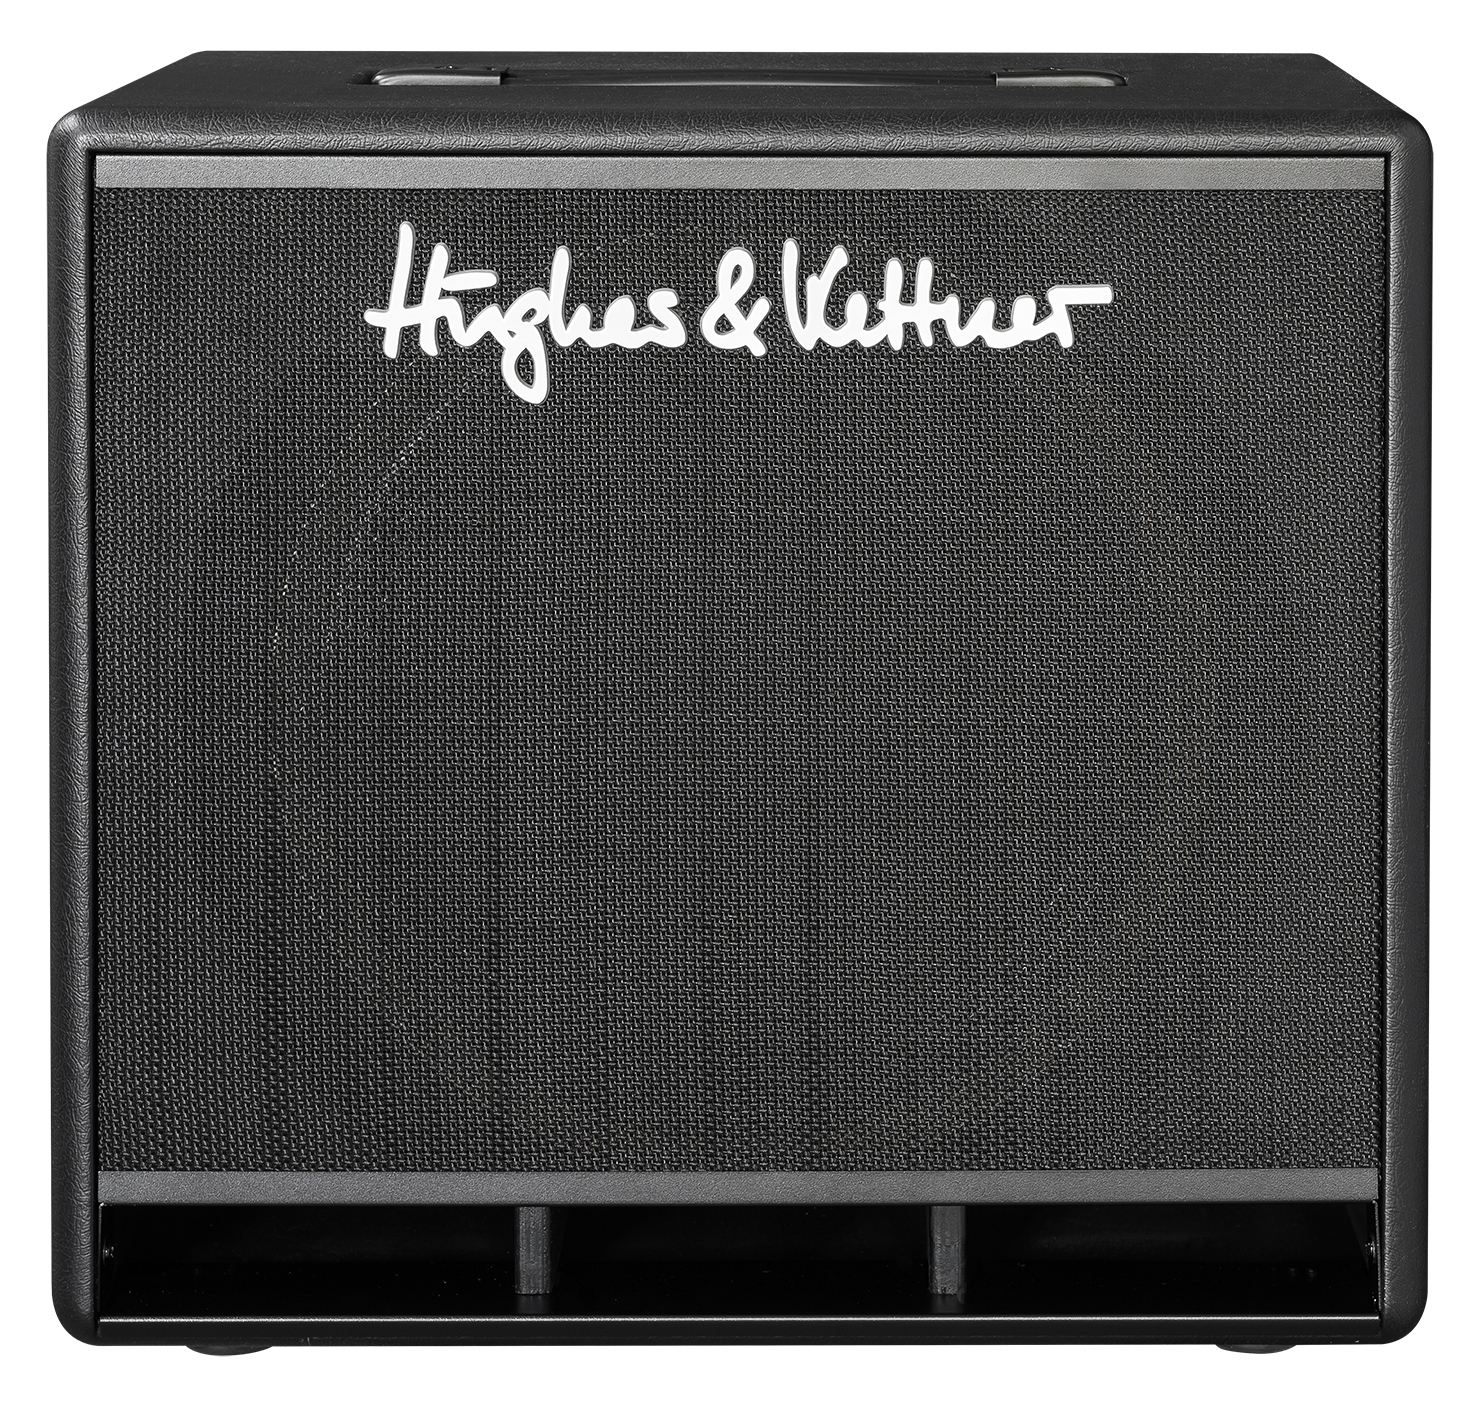 "Hughes & Kettner's Black Spirit 200 Combo promises to be the ""largest-sounding 1x12 combo ever produced"" 